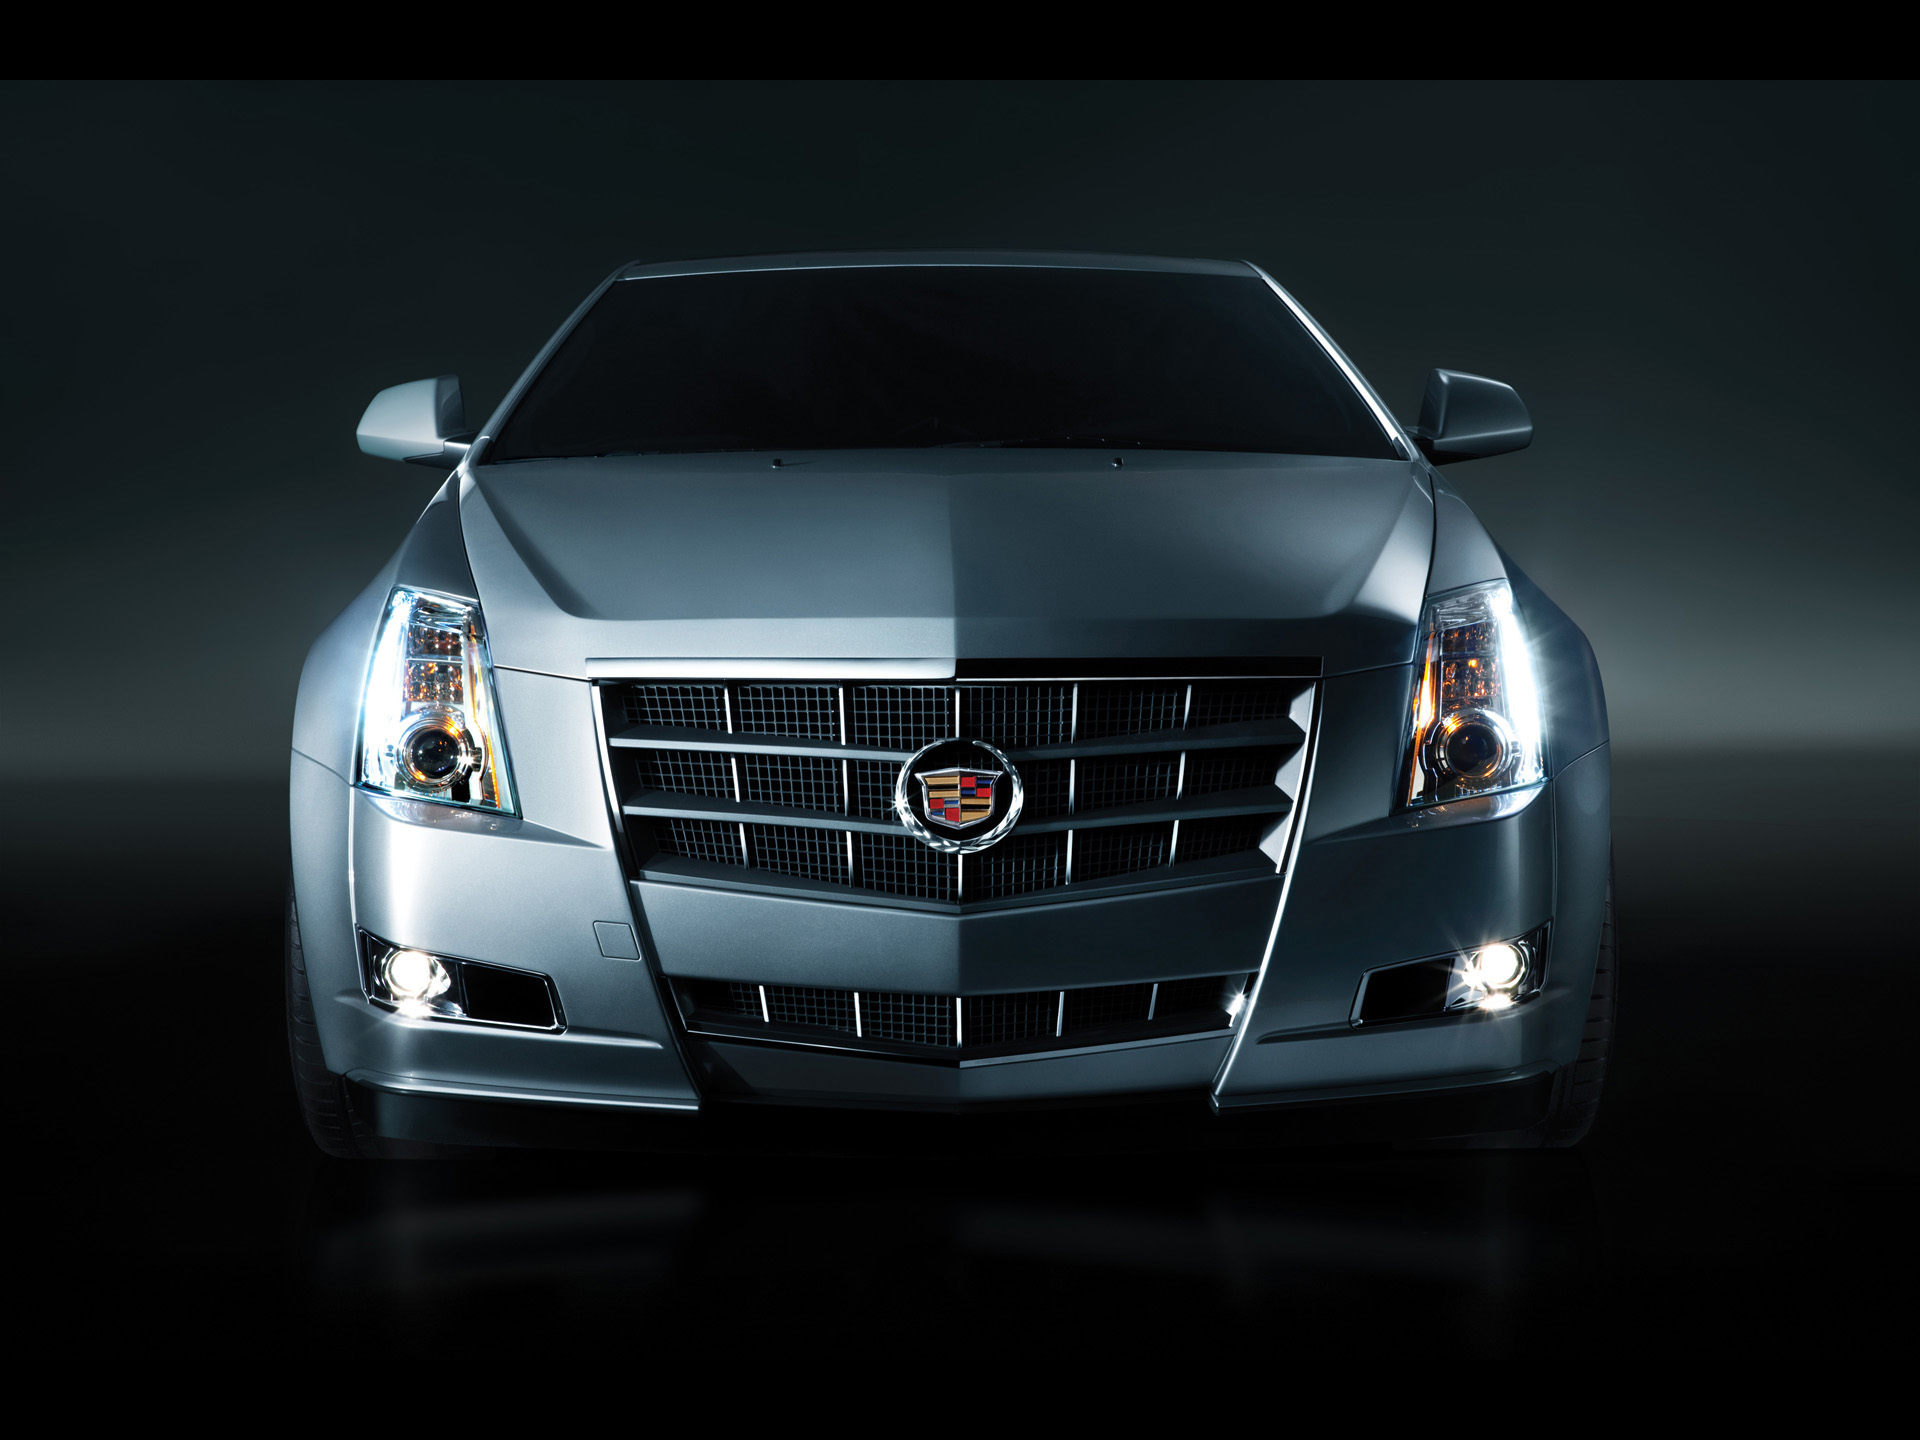 click to free download the wallpaper--Super Cars Image of Cadillac CTS Coupe, Studio Front, Everything is Just Perfect 1920X1440 free wallpaper download